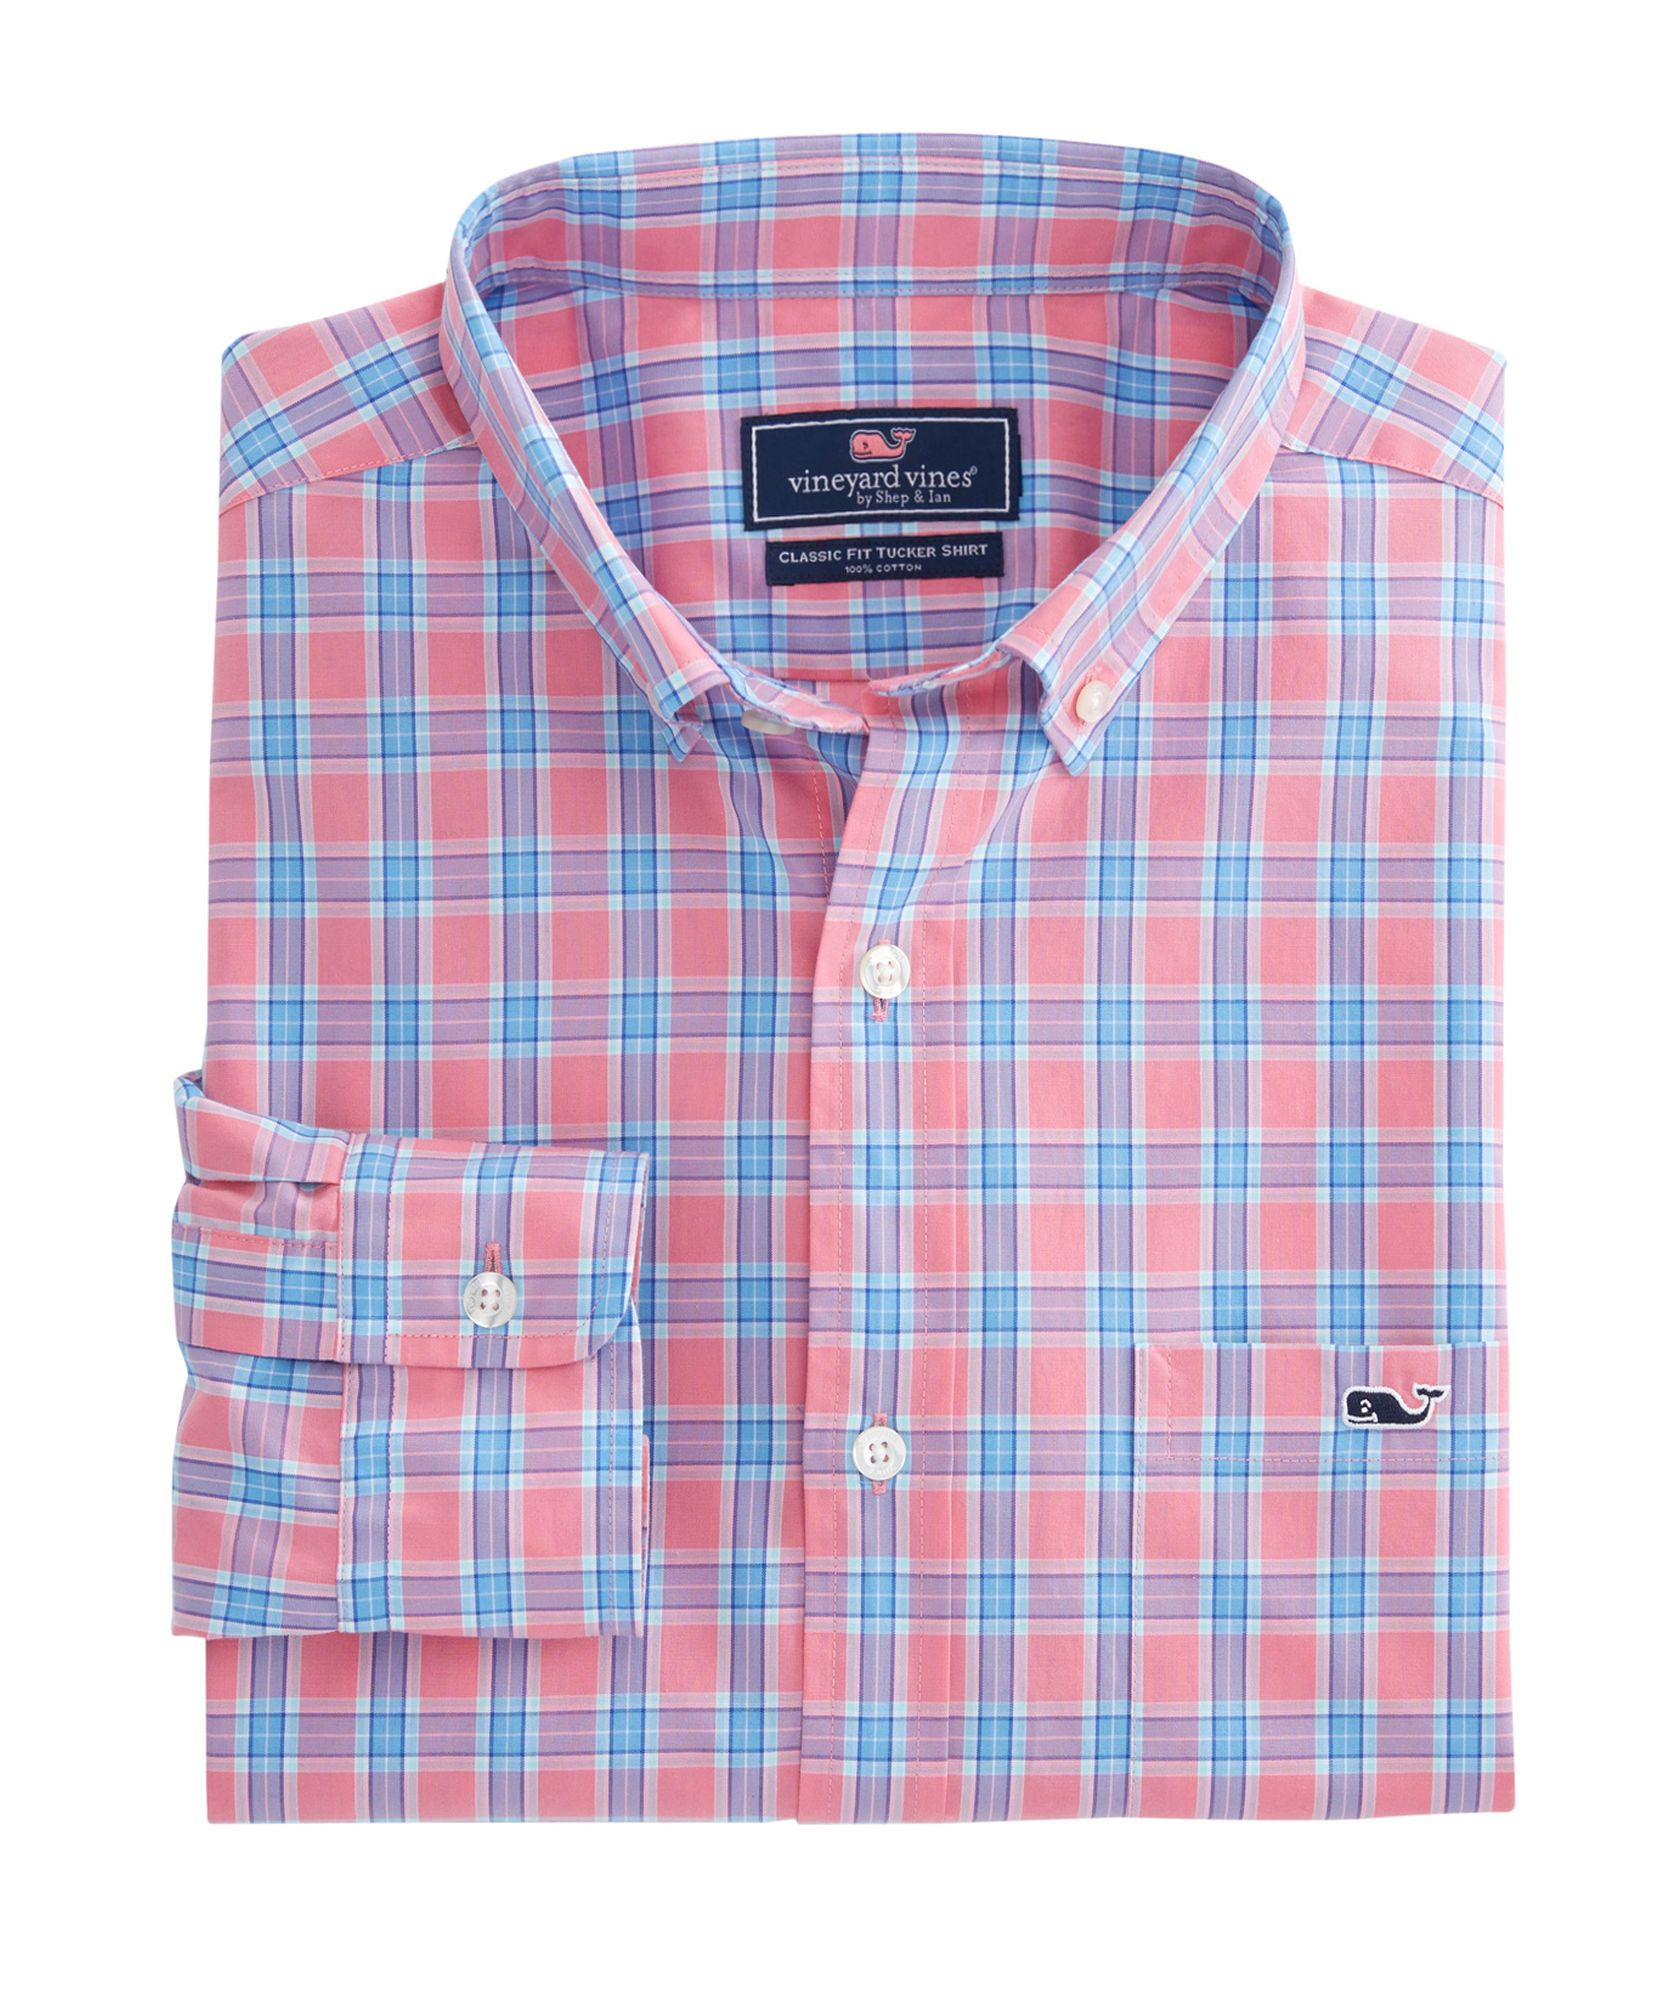 656c643f9620 14 Best Men's Summer Shirts 2019 - Casual Preppy Summer Shirts for Men